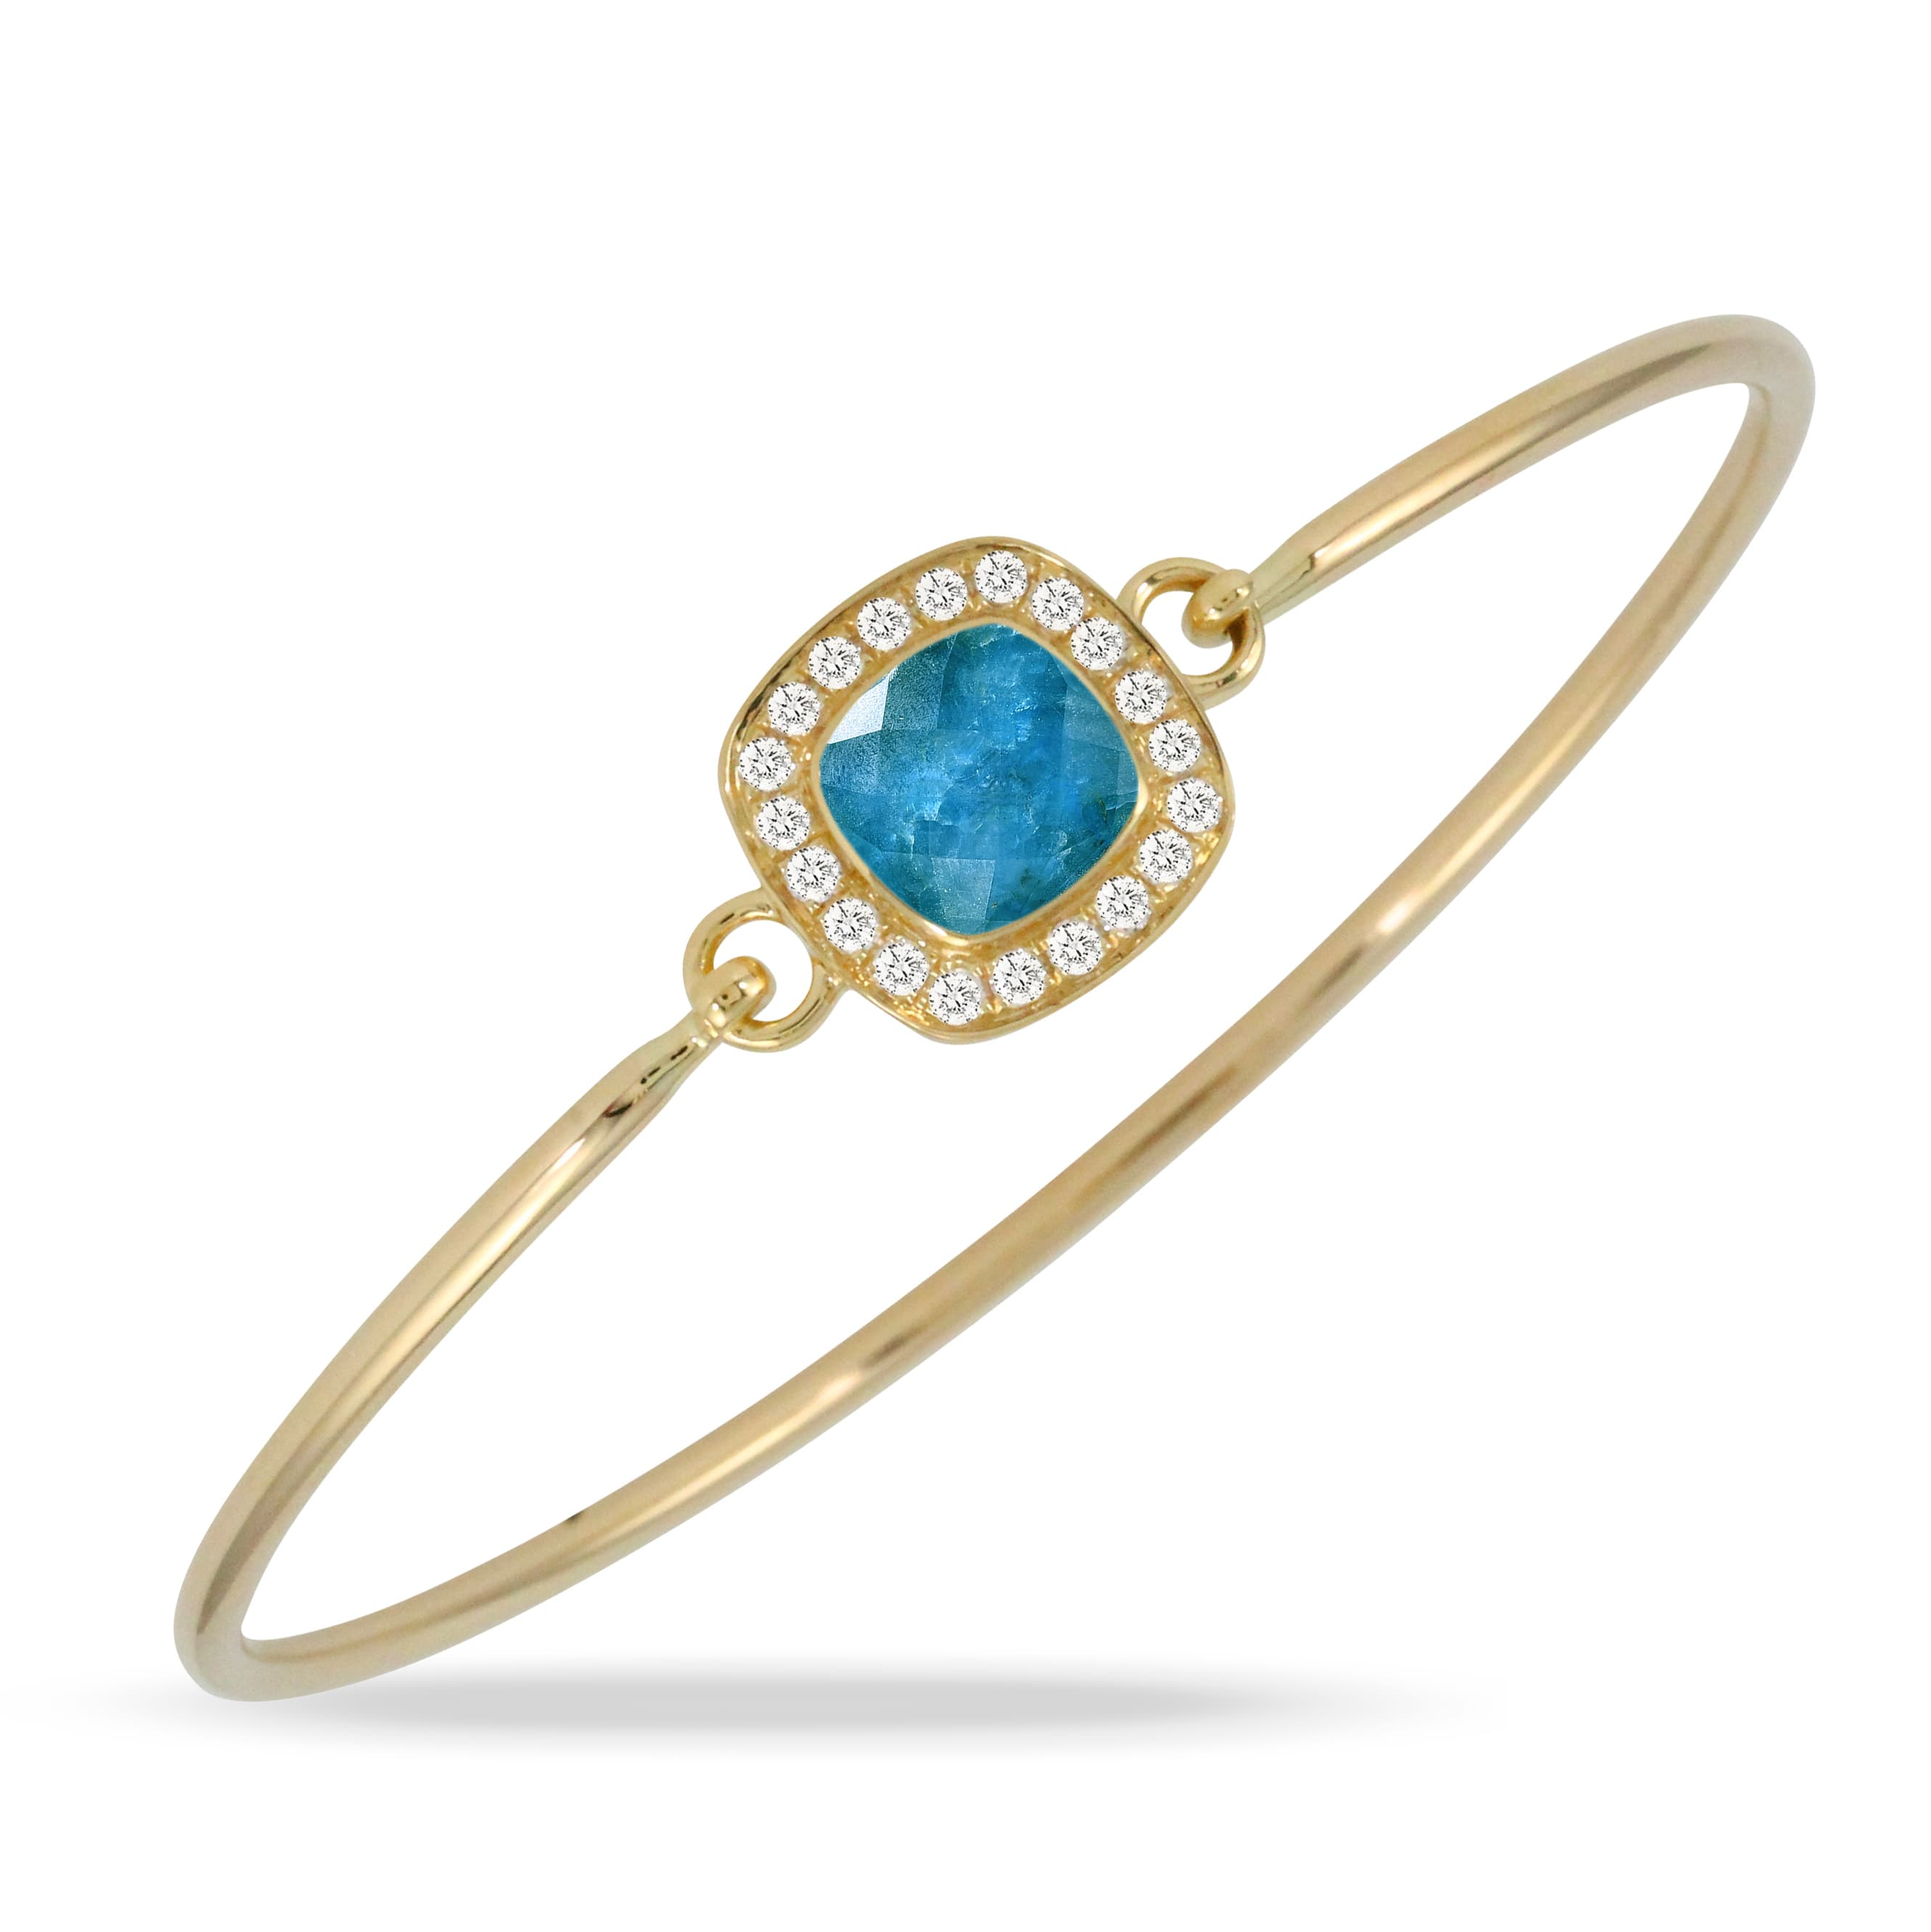 18K YELLOW GOLD DIAMOND BANGLE WITH CLEAR QUARTZ OVER APATITE